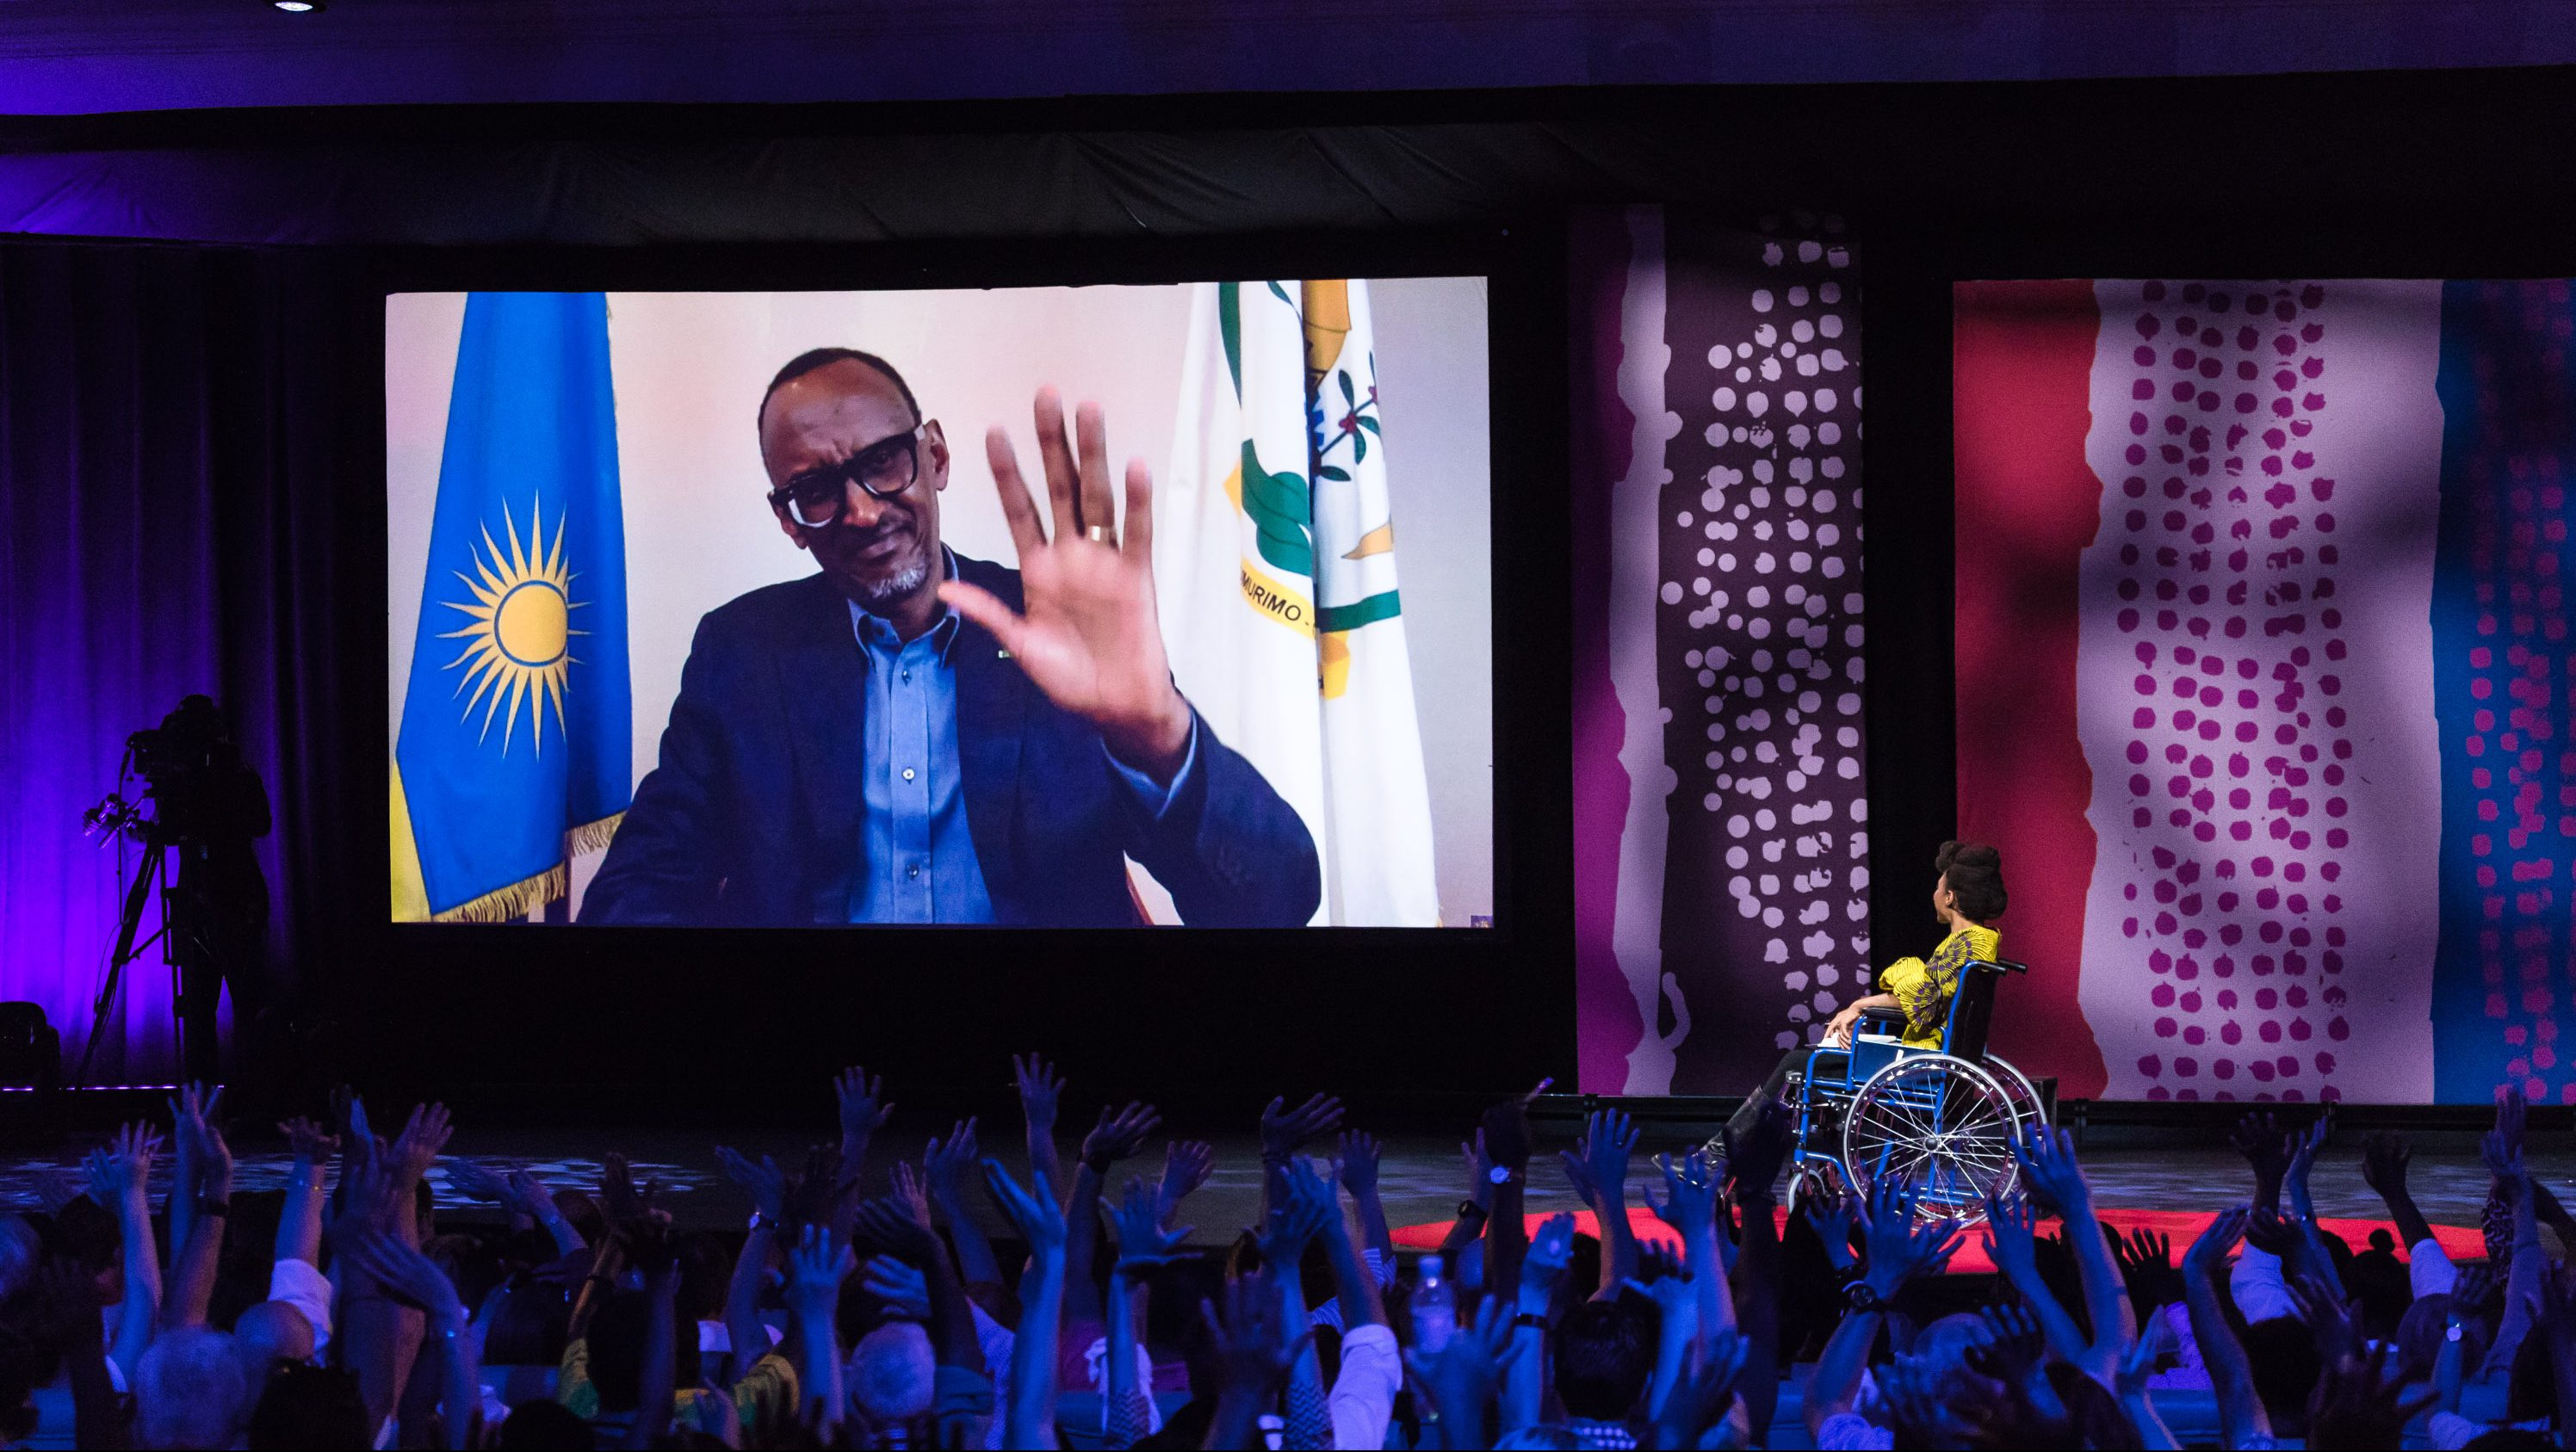 Paul Kagame, President of Rwanda, interviewed by Vimbayi Kajese via live video link at TEDGlobal 2017 - Builders, Truth Tellers, Catalysts - August 27-30, 2017, Arusha, Tanzania.